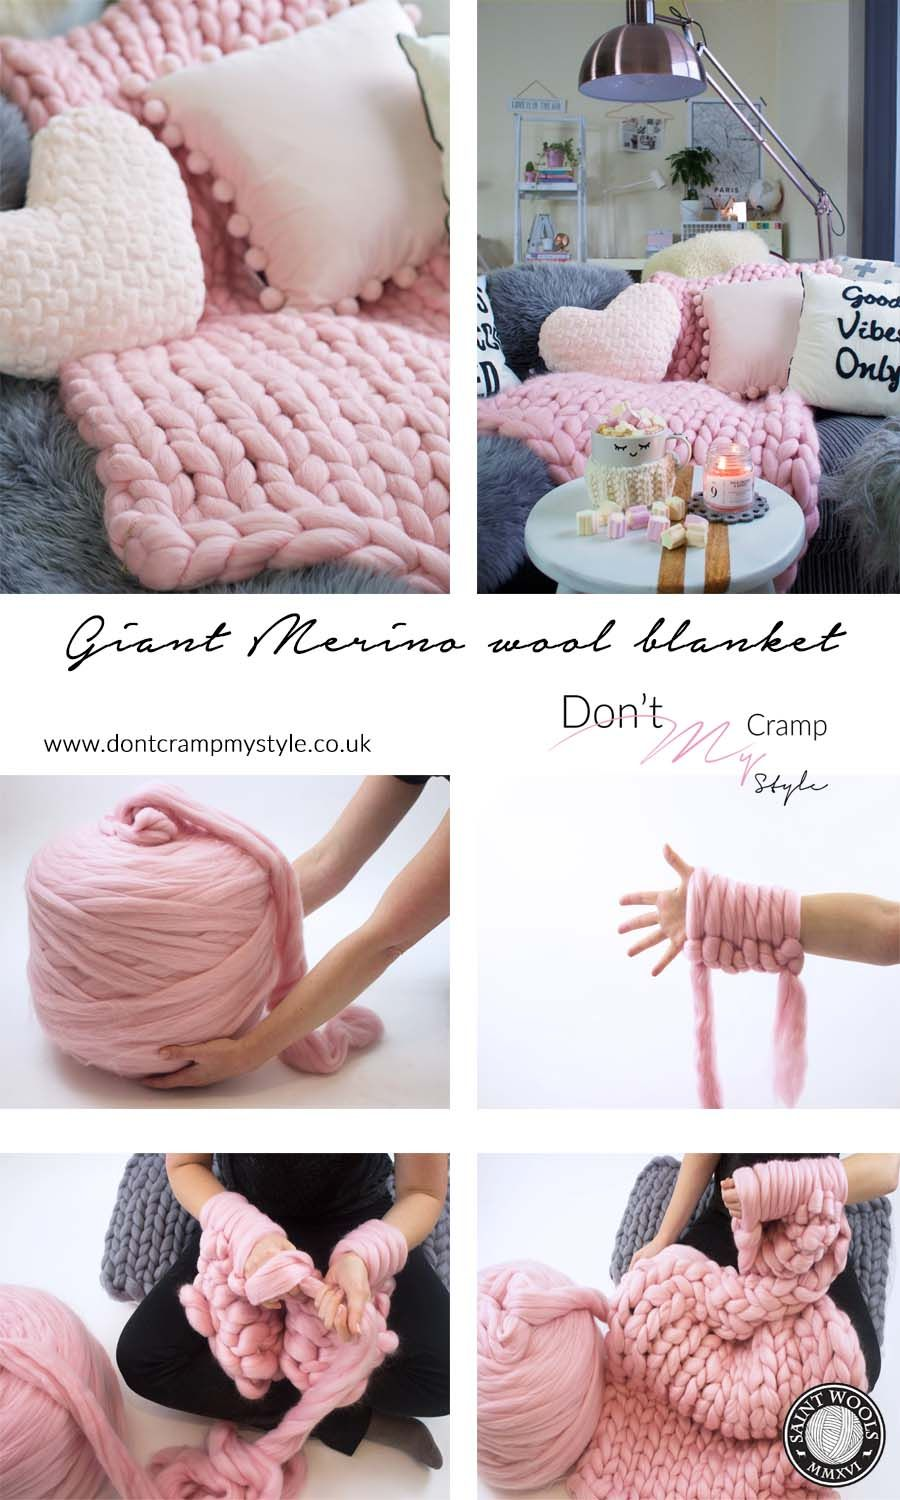 **SALE**Handmade in UK 100/% merino wool baby arm knit blanket choose your colour